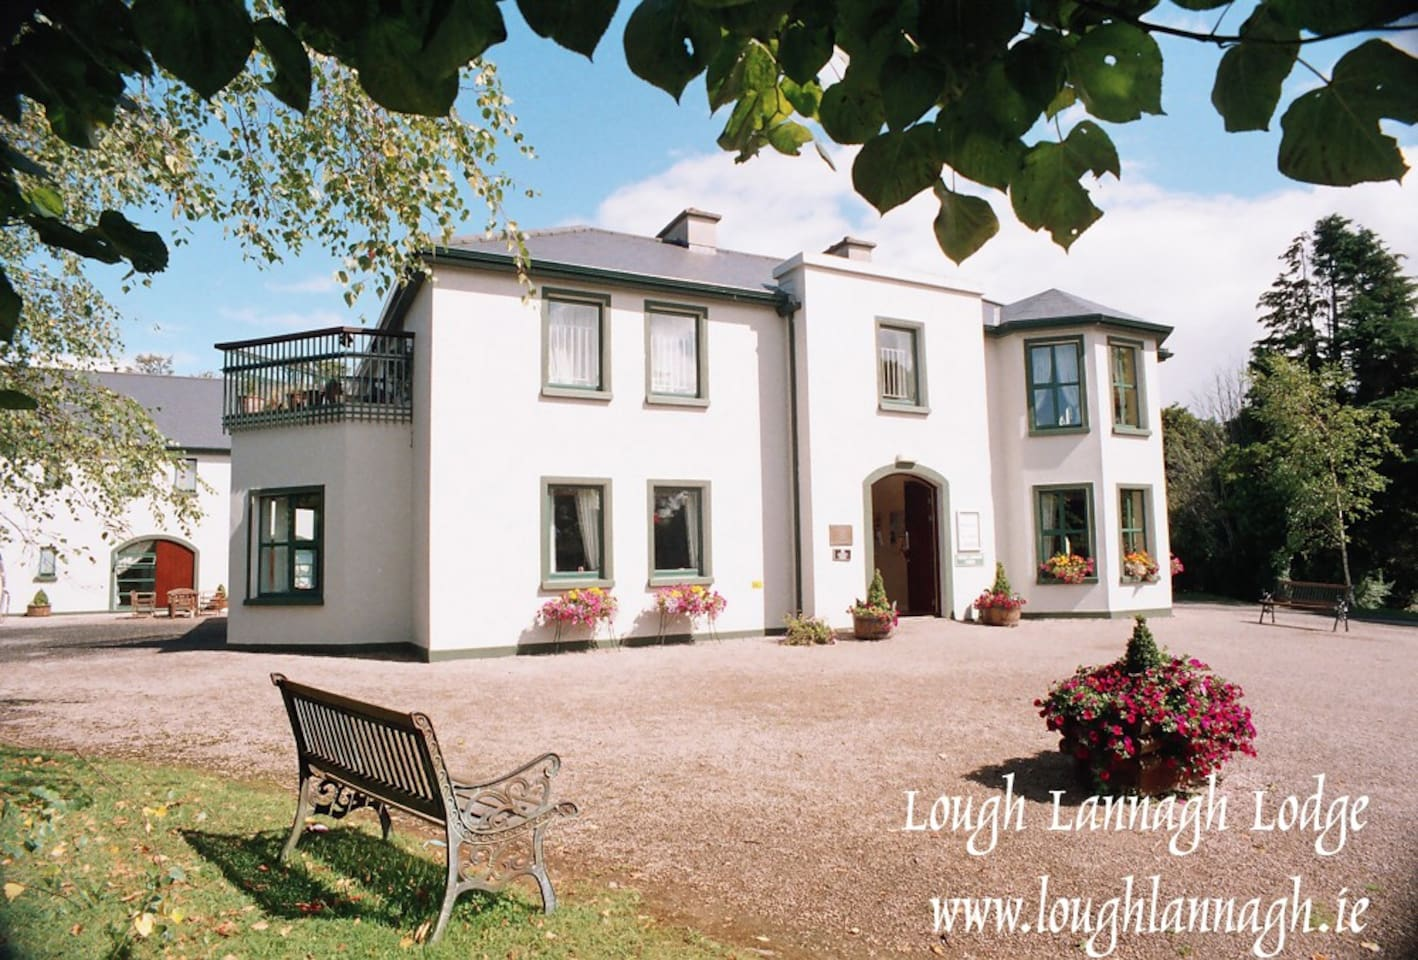 Beside Lough Lannagh lake, in walking distance of Castlebar, 15 drive to Westport. AA 3 star guest accommodation.